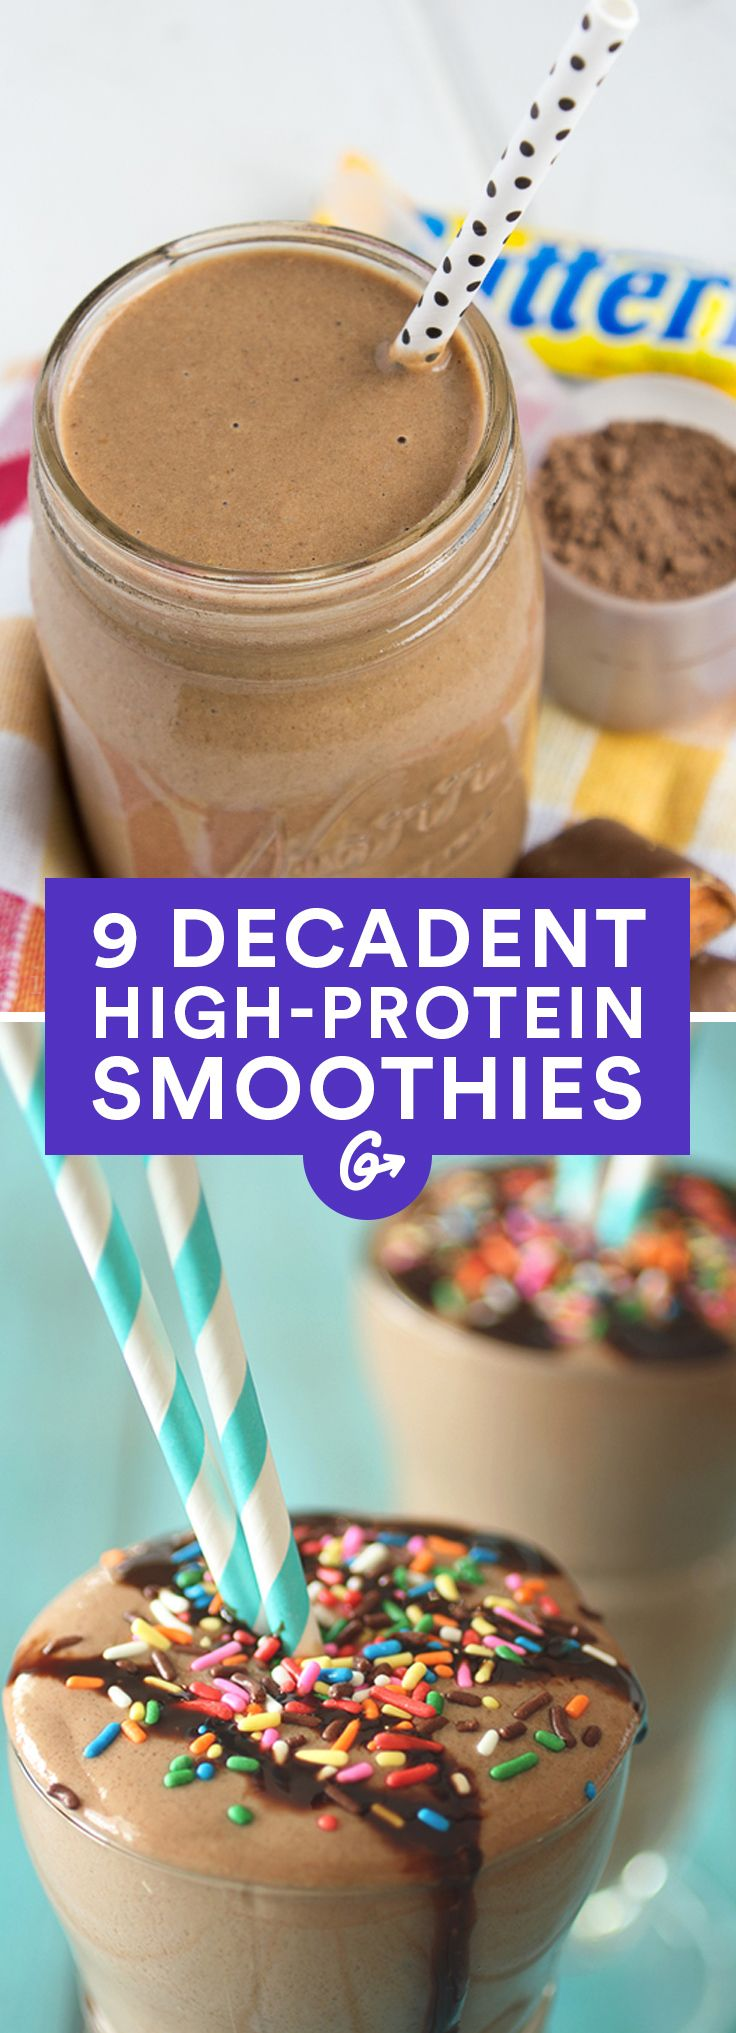 9 High-Protein Smoothies That Taste Like a Milkshake #smoothies #protein http://greatist.com/eat/milkshake-inspired-protein-shake-recipes